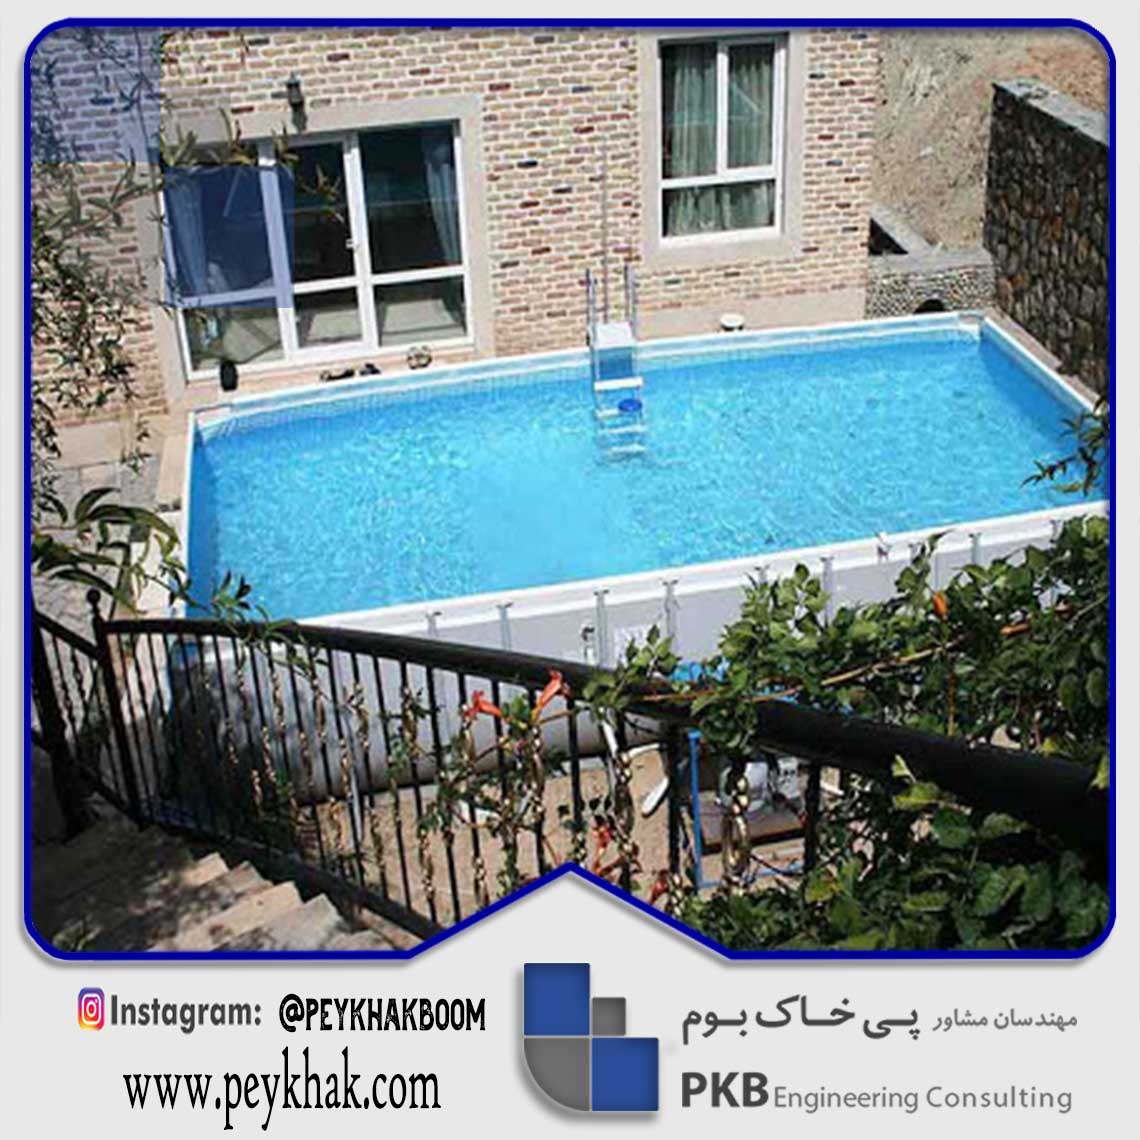 Stages and the process of building a home pool